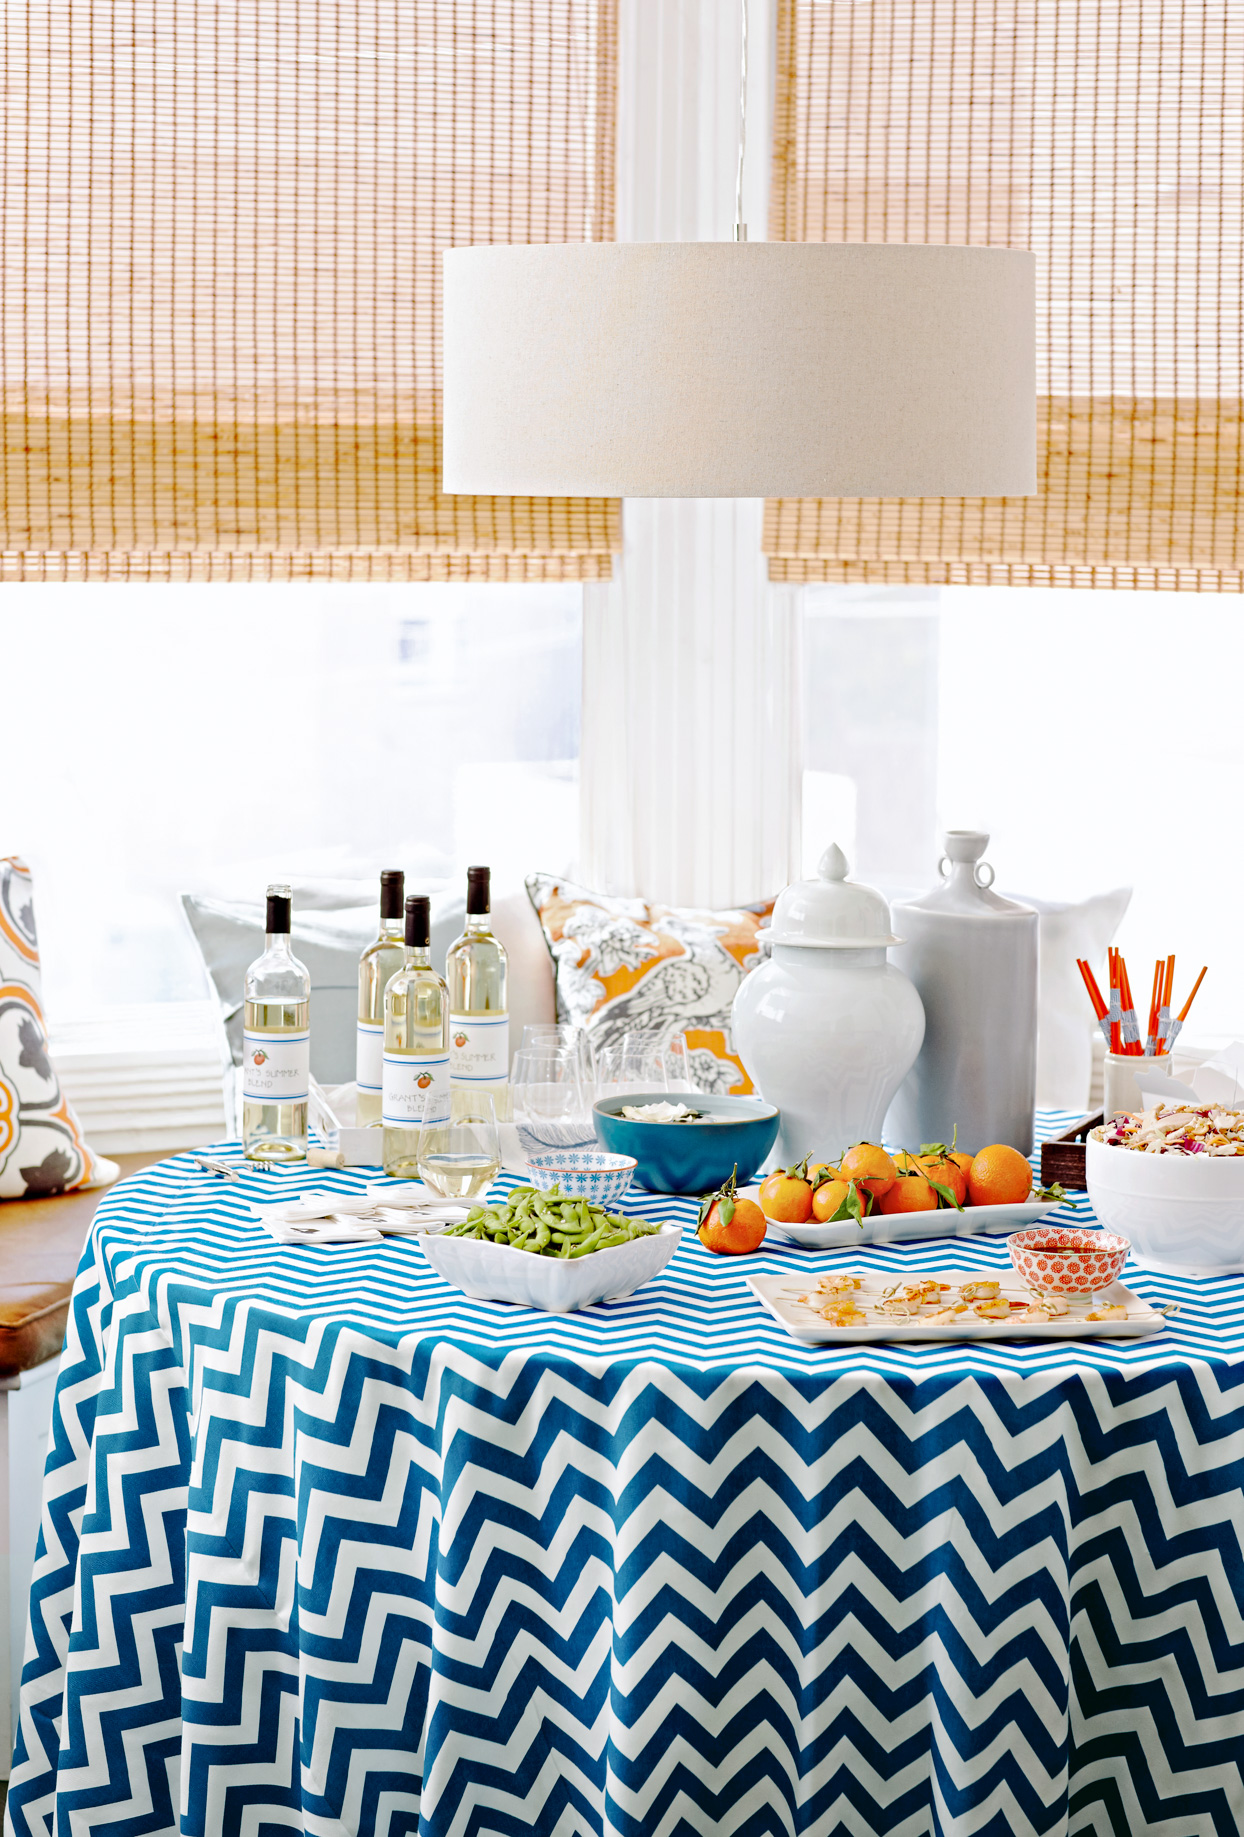 Summer party table display